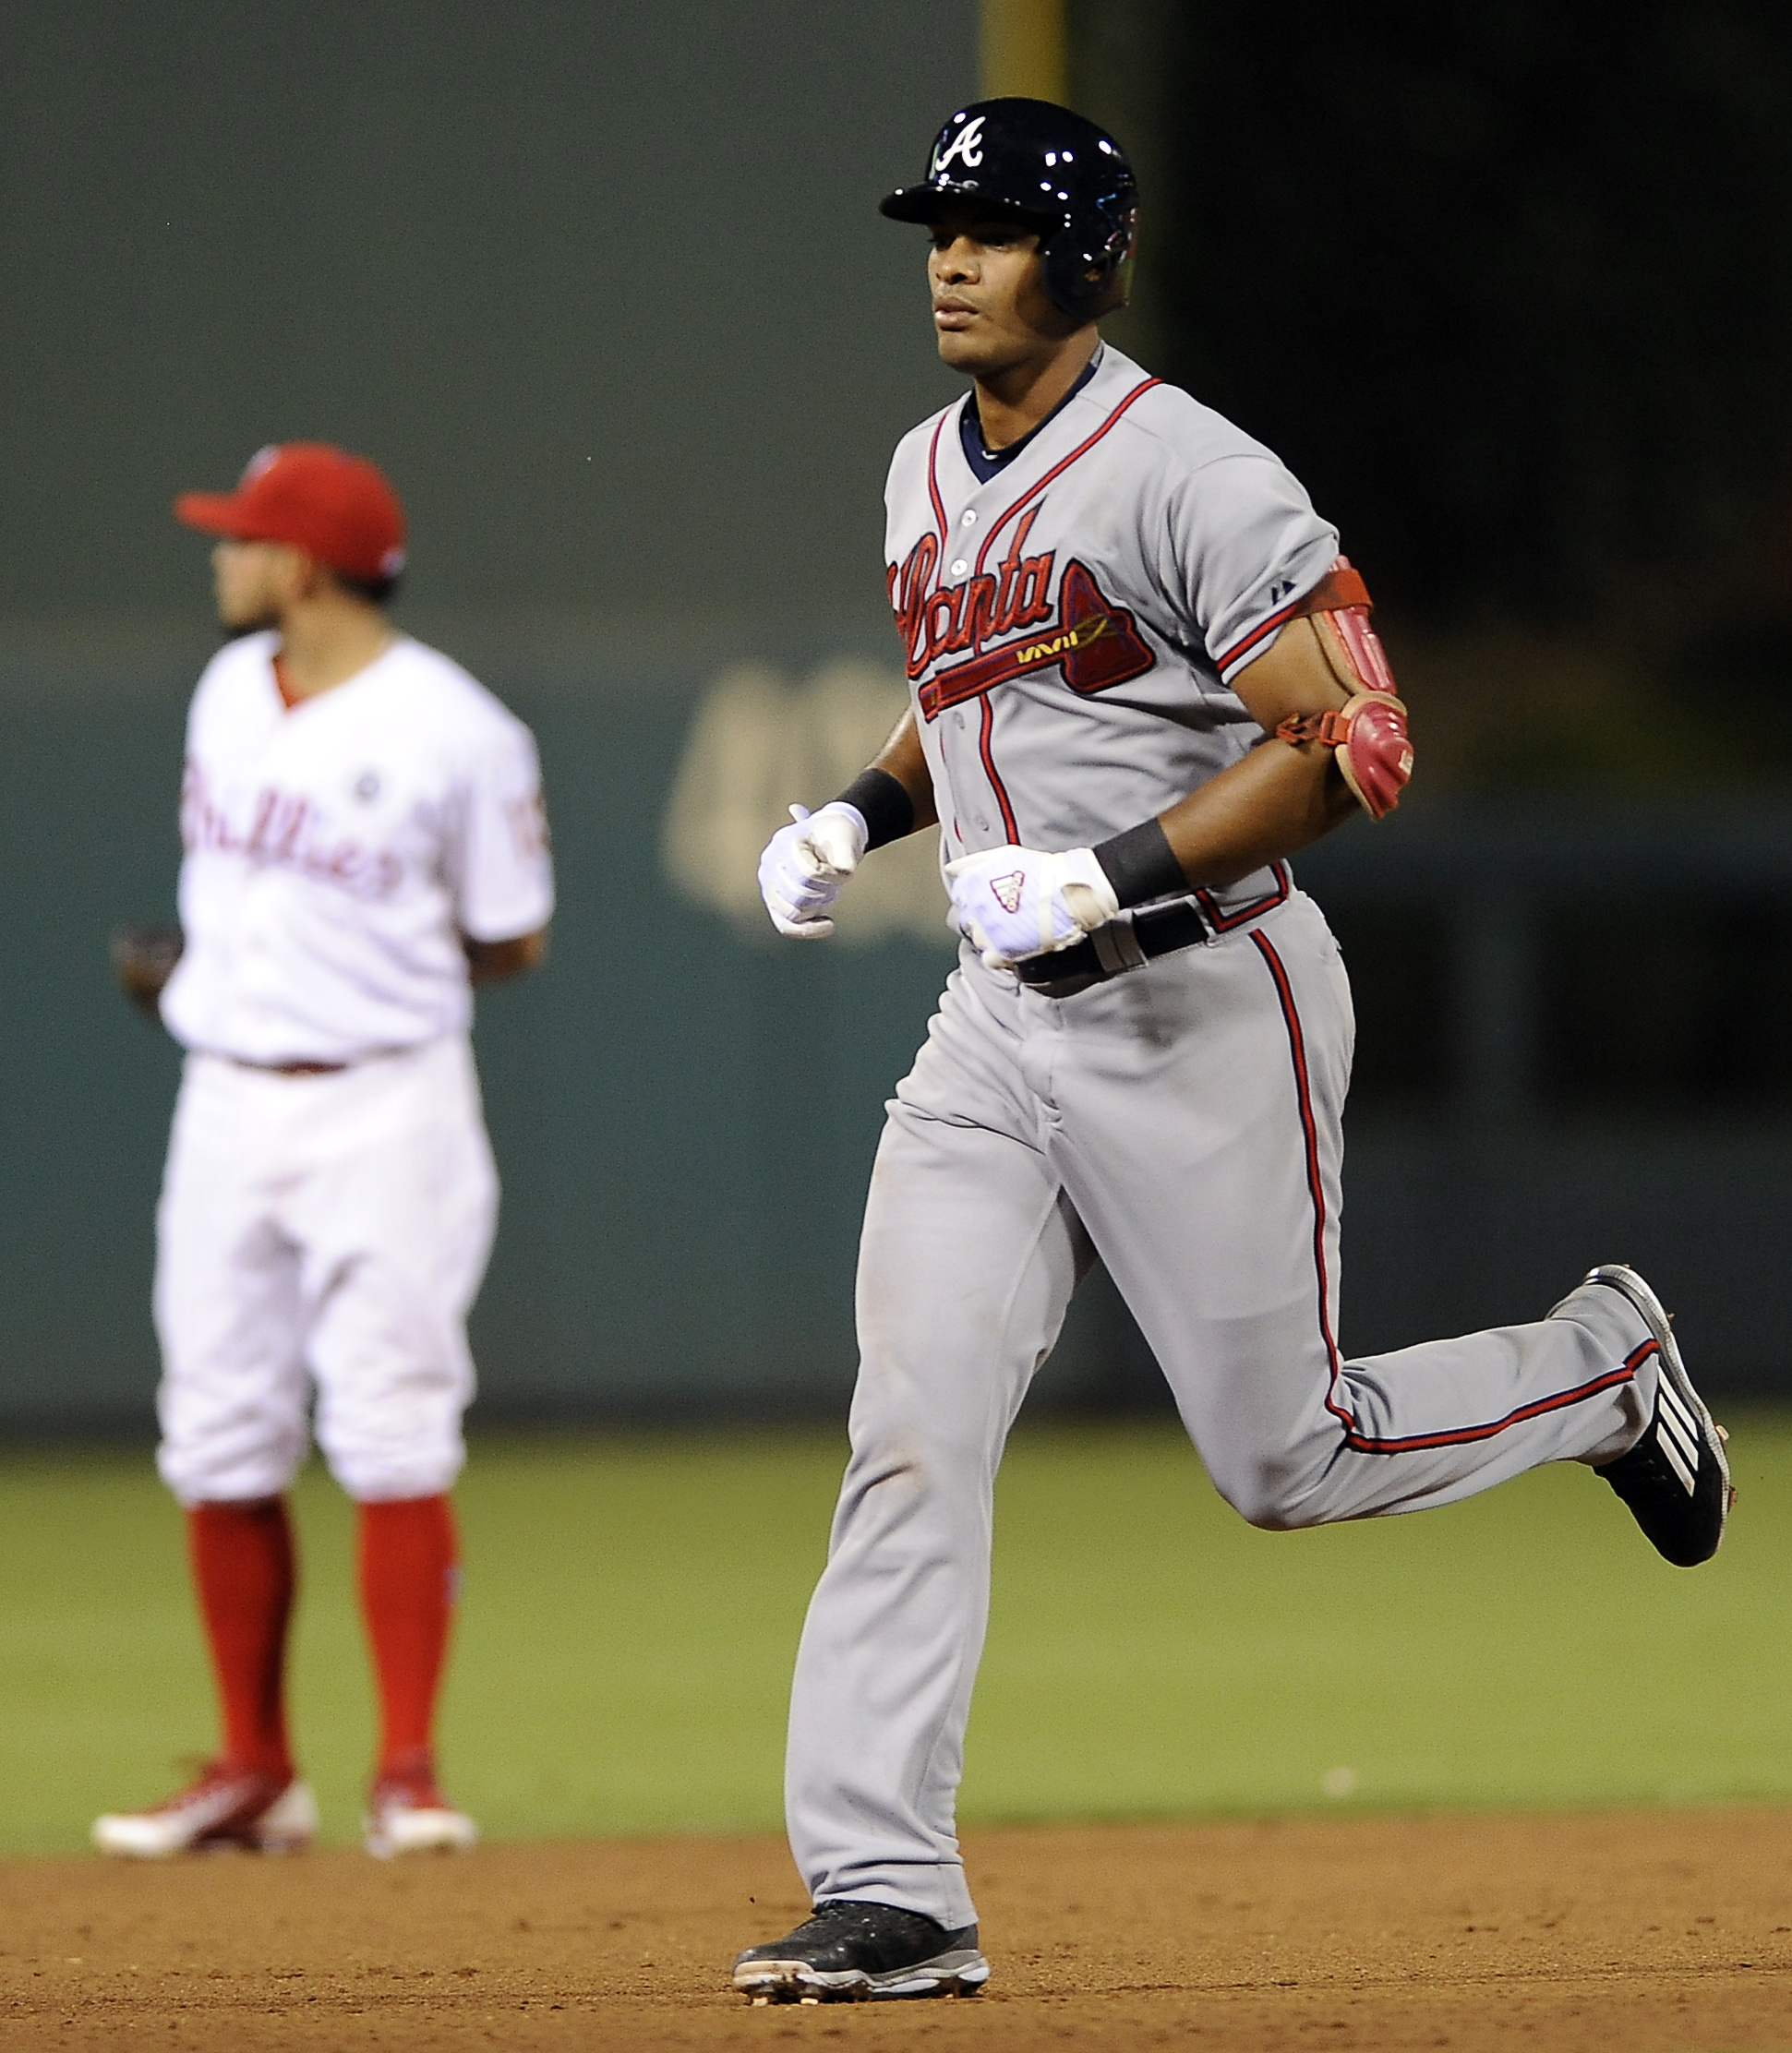 Atlanta Braves' Hector Olivera rounds the bases after hitting a two-run homer in the ninth inning of a baseball game against the Philadelphia Phillies, Monday, Sept. 7, 2015, in Philadelphia. The Braves won 7-2. (AP Photo/Michael Perez)